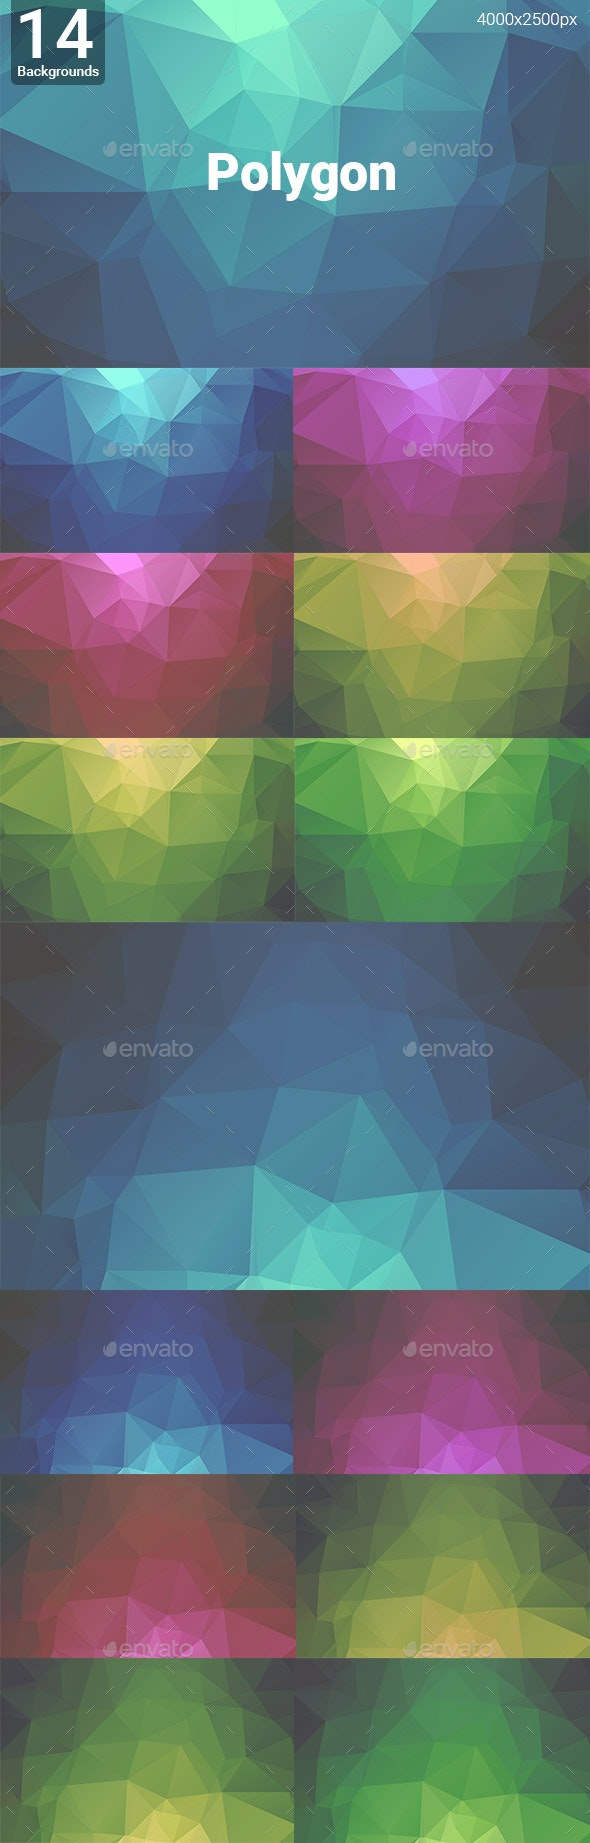 14 Geometric Backgrounds Hd - Abstract Backgrounds